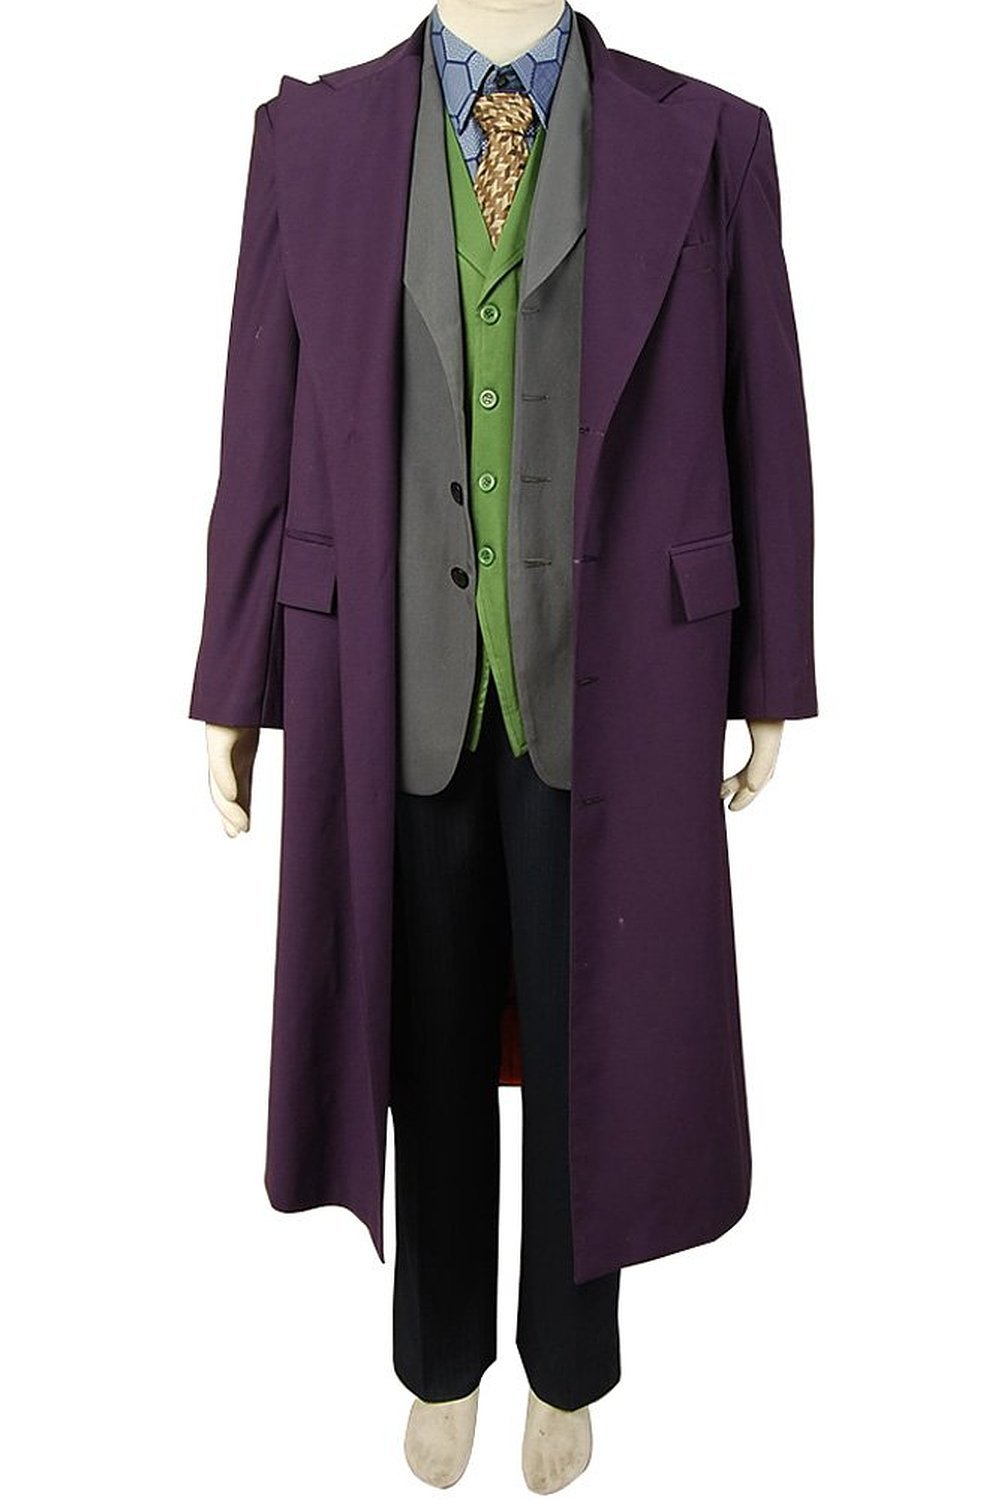 CosDaddy® Cosplay Costume Wool Long Trench Coat,Men-Medium